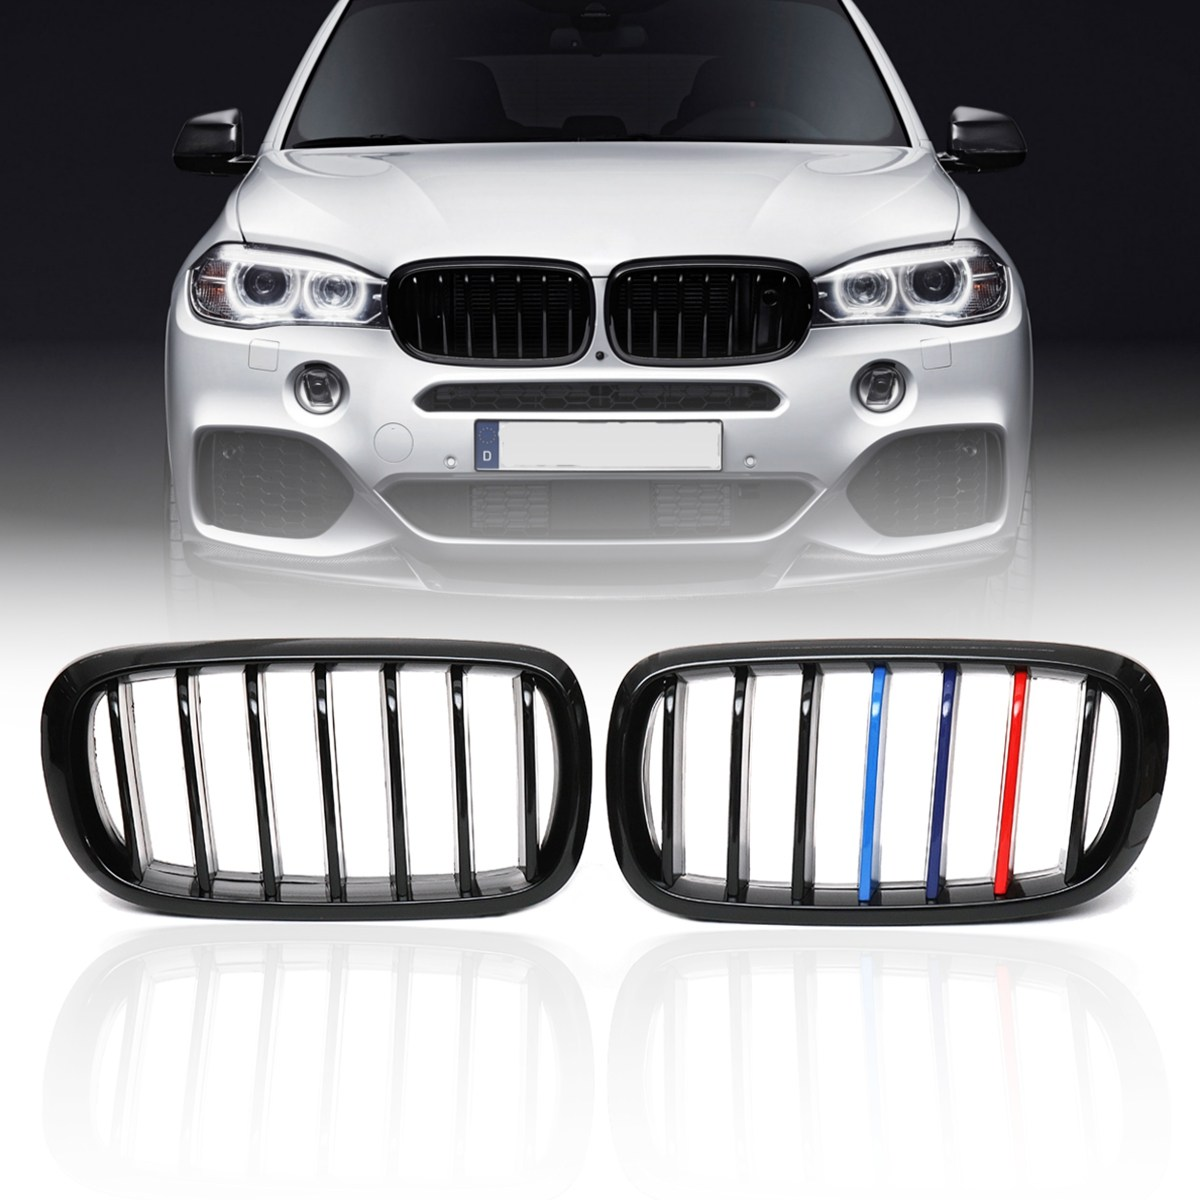 For BMW X5 F15 X6 F16 X5M F85 X6M F86 2014 2015 2016 2017 Pair Gloss Matt Black M-Color Front Kidney Racing Bumper Grille Grill x5 x6 m performance sport design m color front grill dual slat kidney custom auto grille fit for bmw 2015 2016 f15 f16 suv